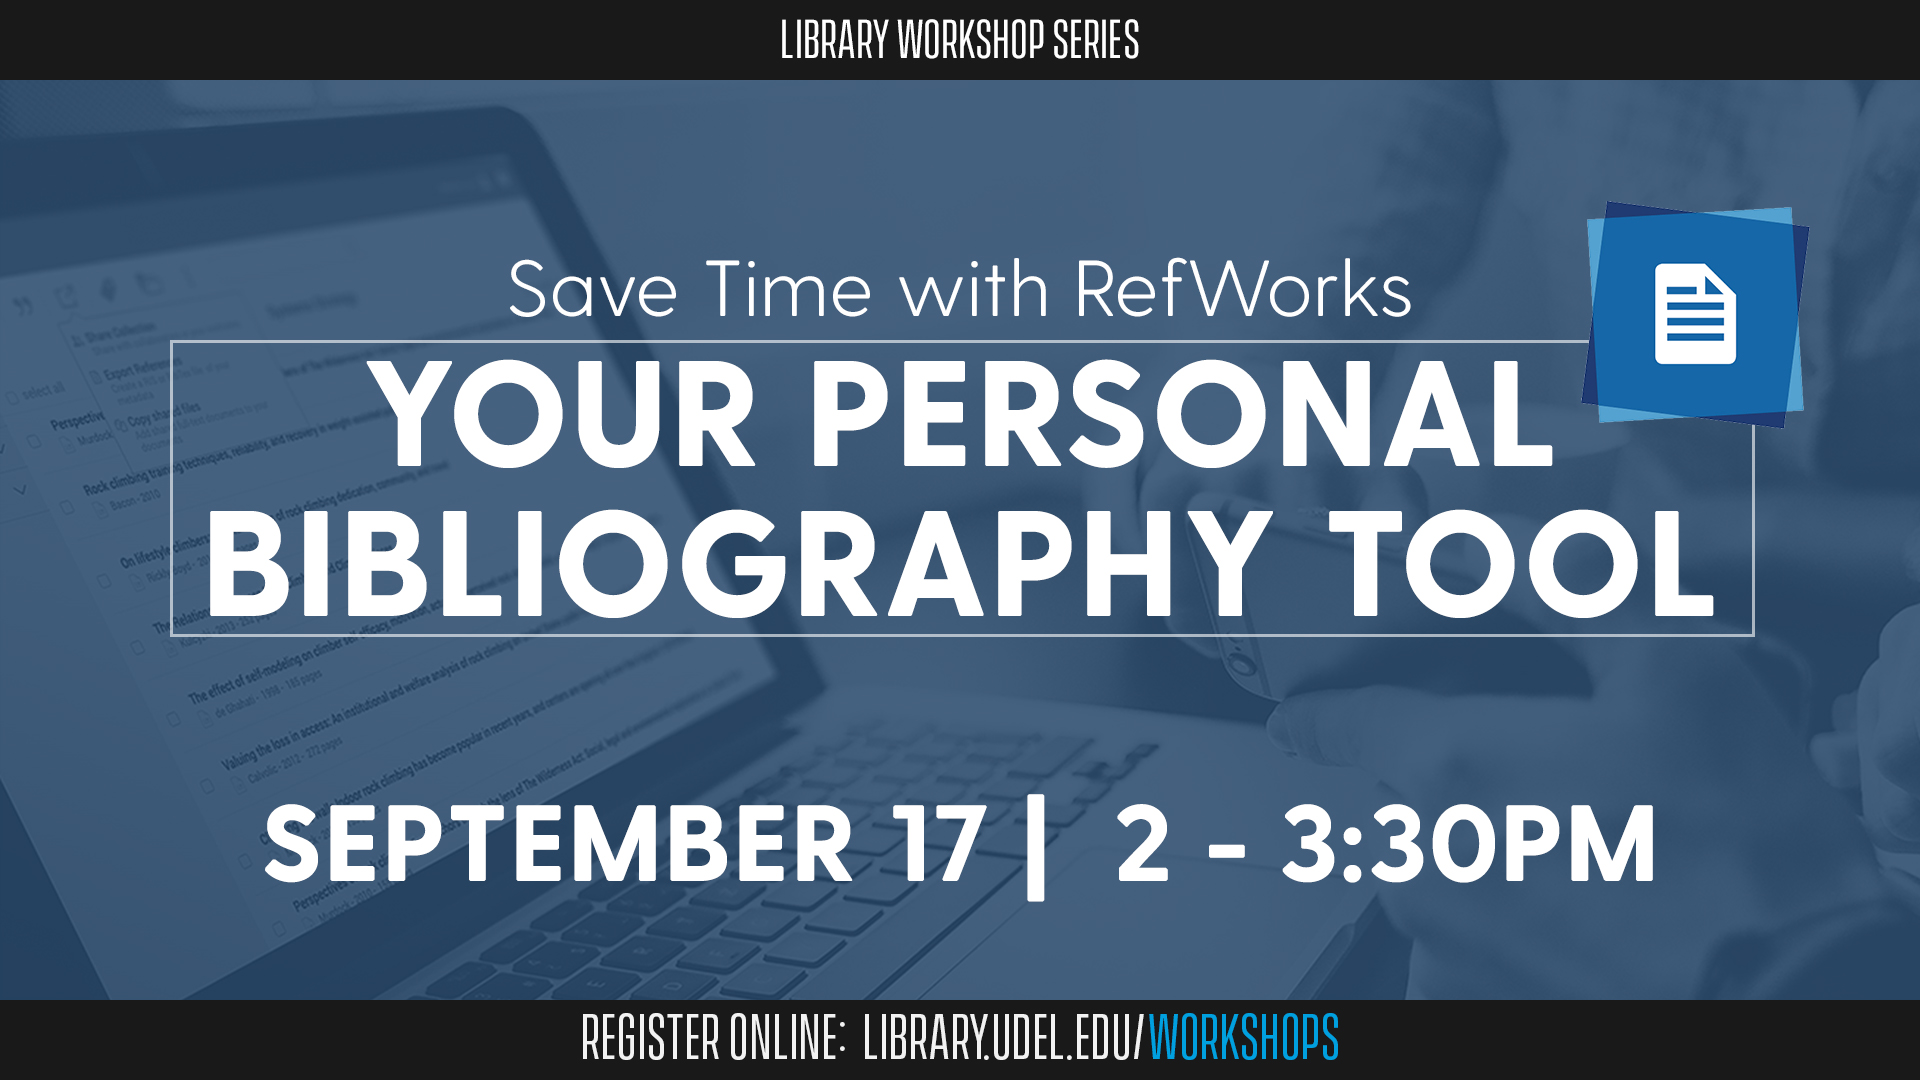 Save Time with RefWorks: Your Personal Bibliography Tool